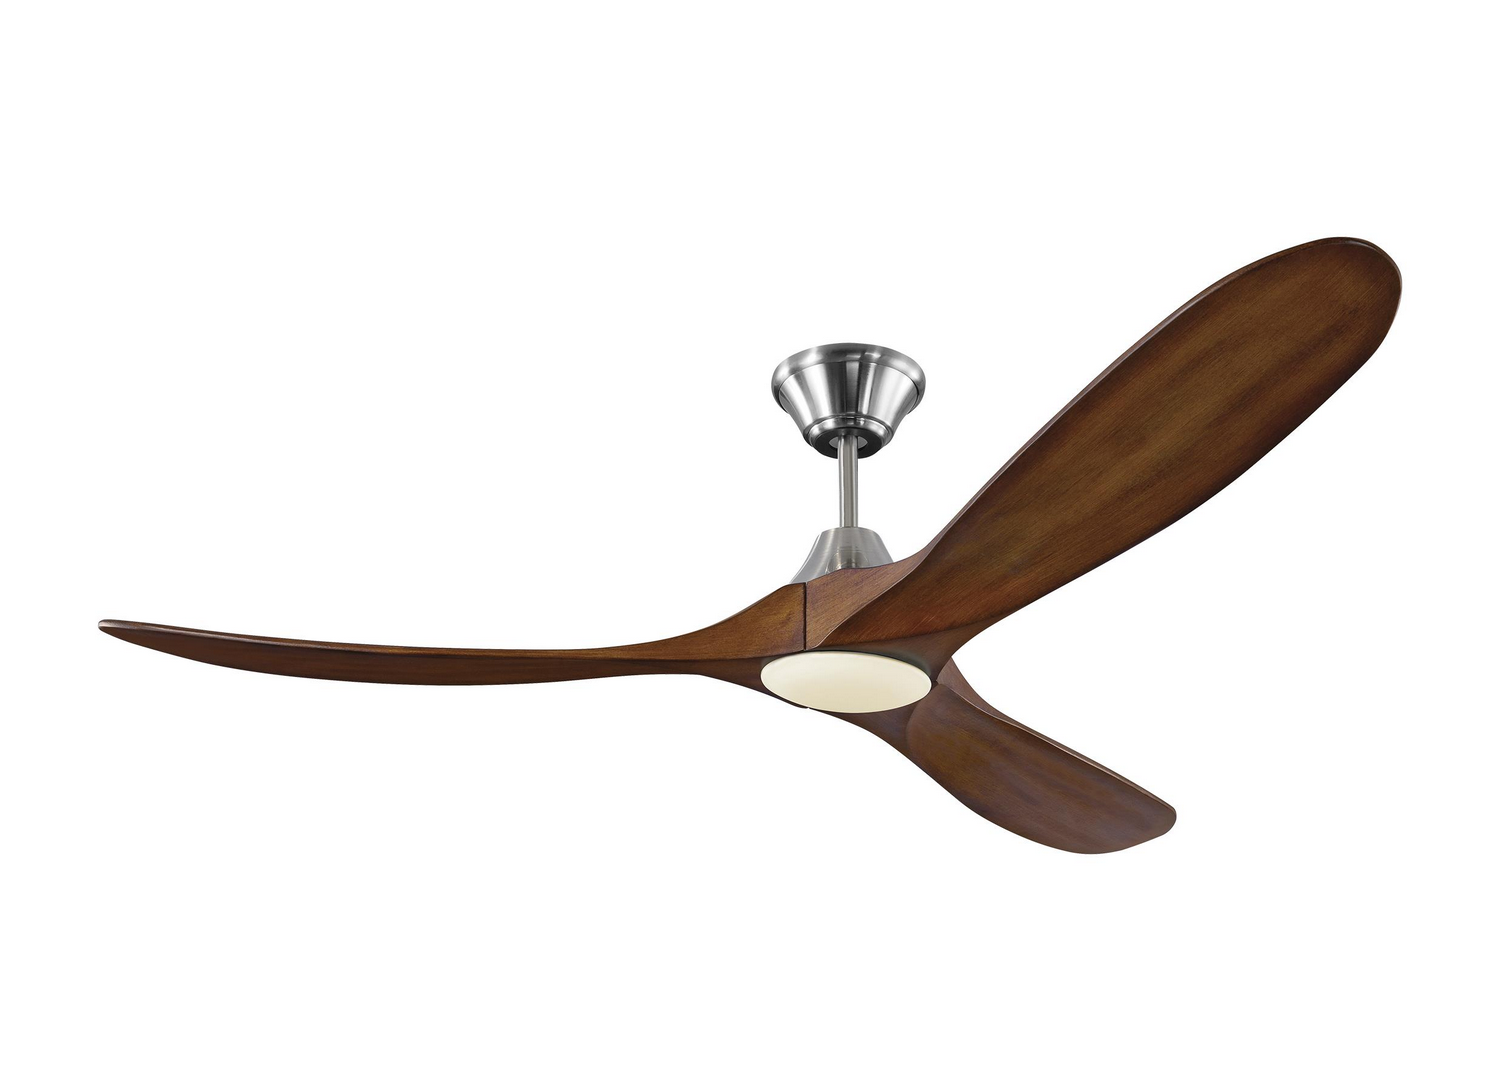 60 inchCeiling Fan from the Maverick LED collection by Monte Carlo 3MAVR60BSKOAD